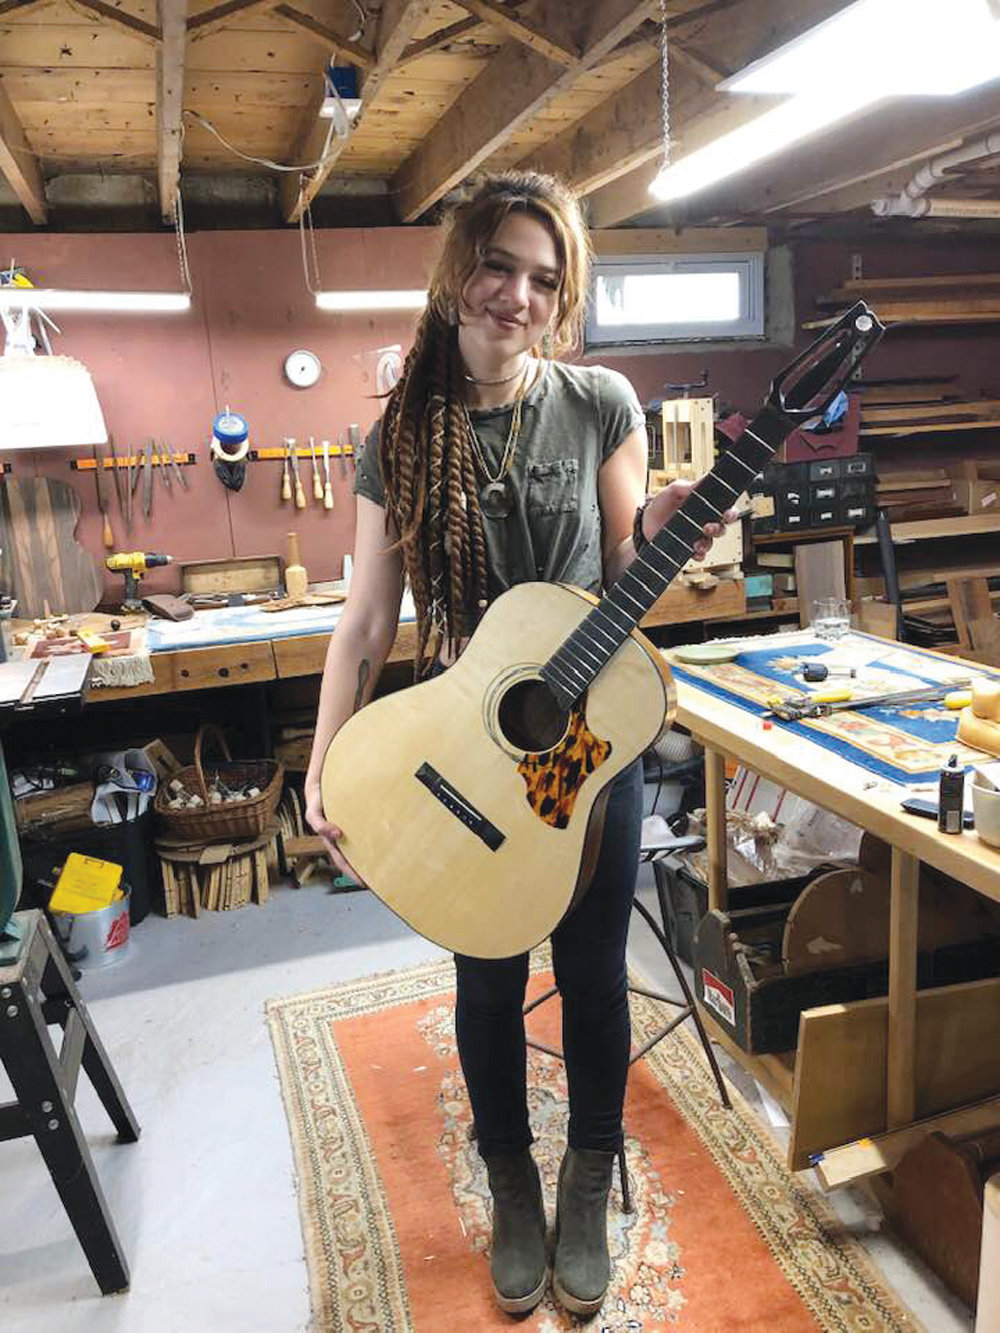 MUSIC MAKER: Ariel Rose Bodman of the Aldrich Mansion Music Academy says she is dedicated to providing a high-quality, contemporary and accessible approach to music education for local students.